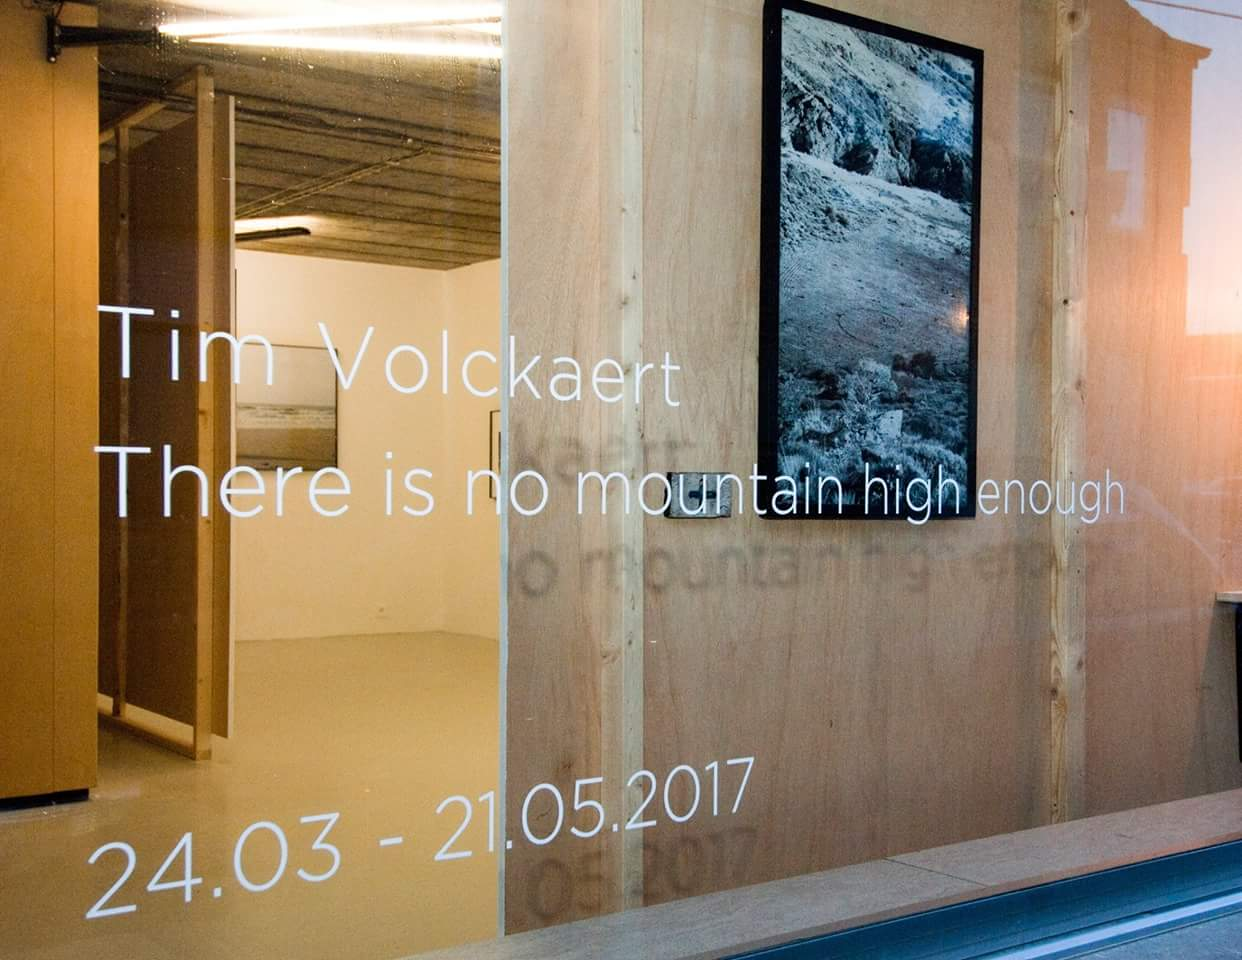 2017-Architectenbureau Knap-Scenografie-There is no mountain high enough-Tim Volckaert-expo-Bruthaus